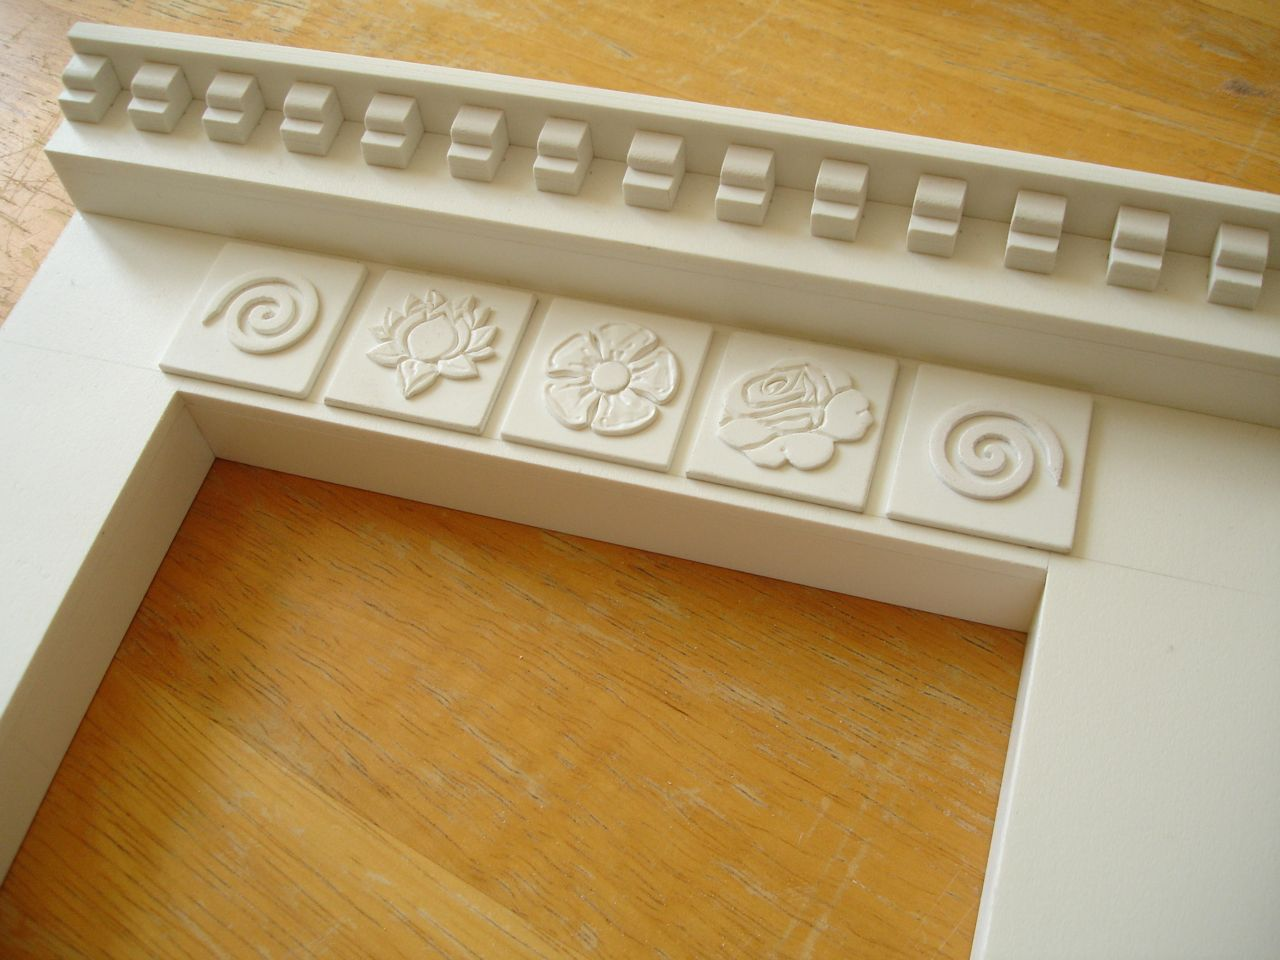 David Neat, props for stop-motion animation, fireplace carving in Palight foamed PVC